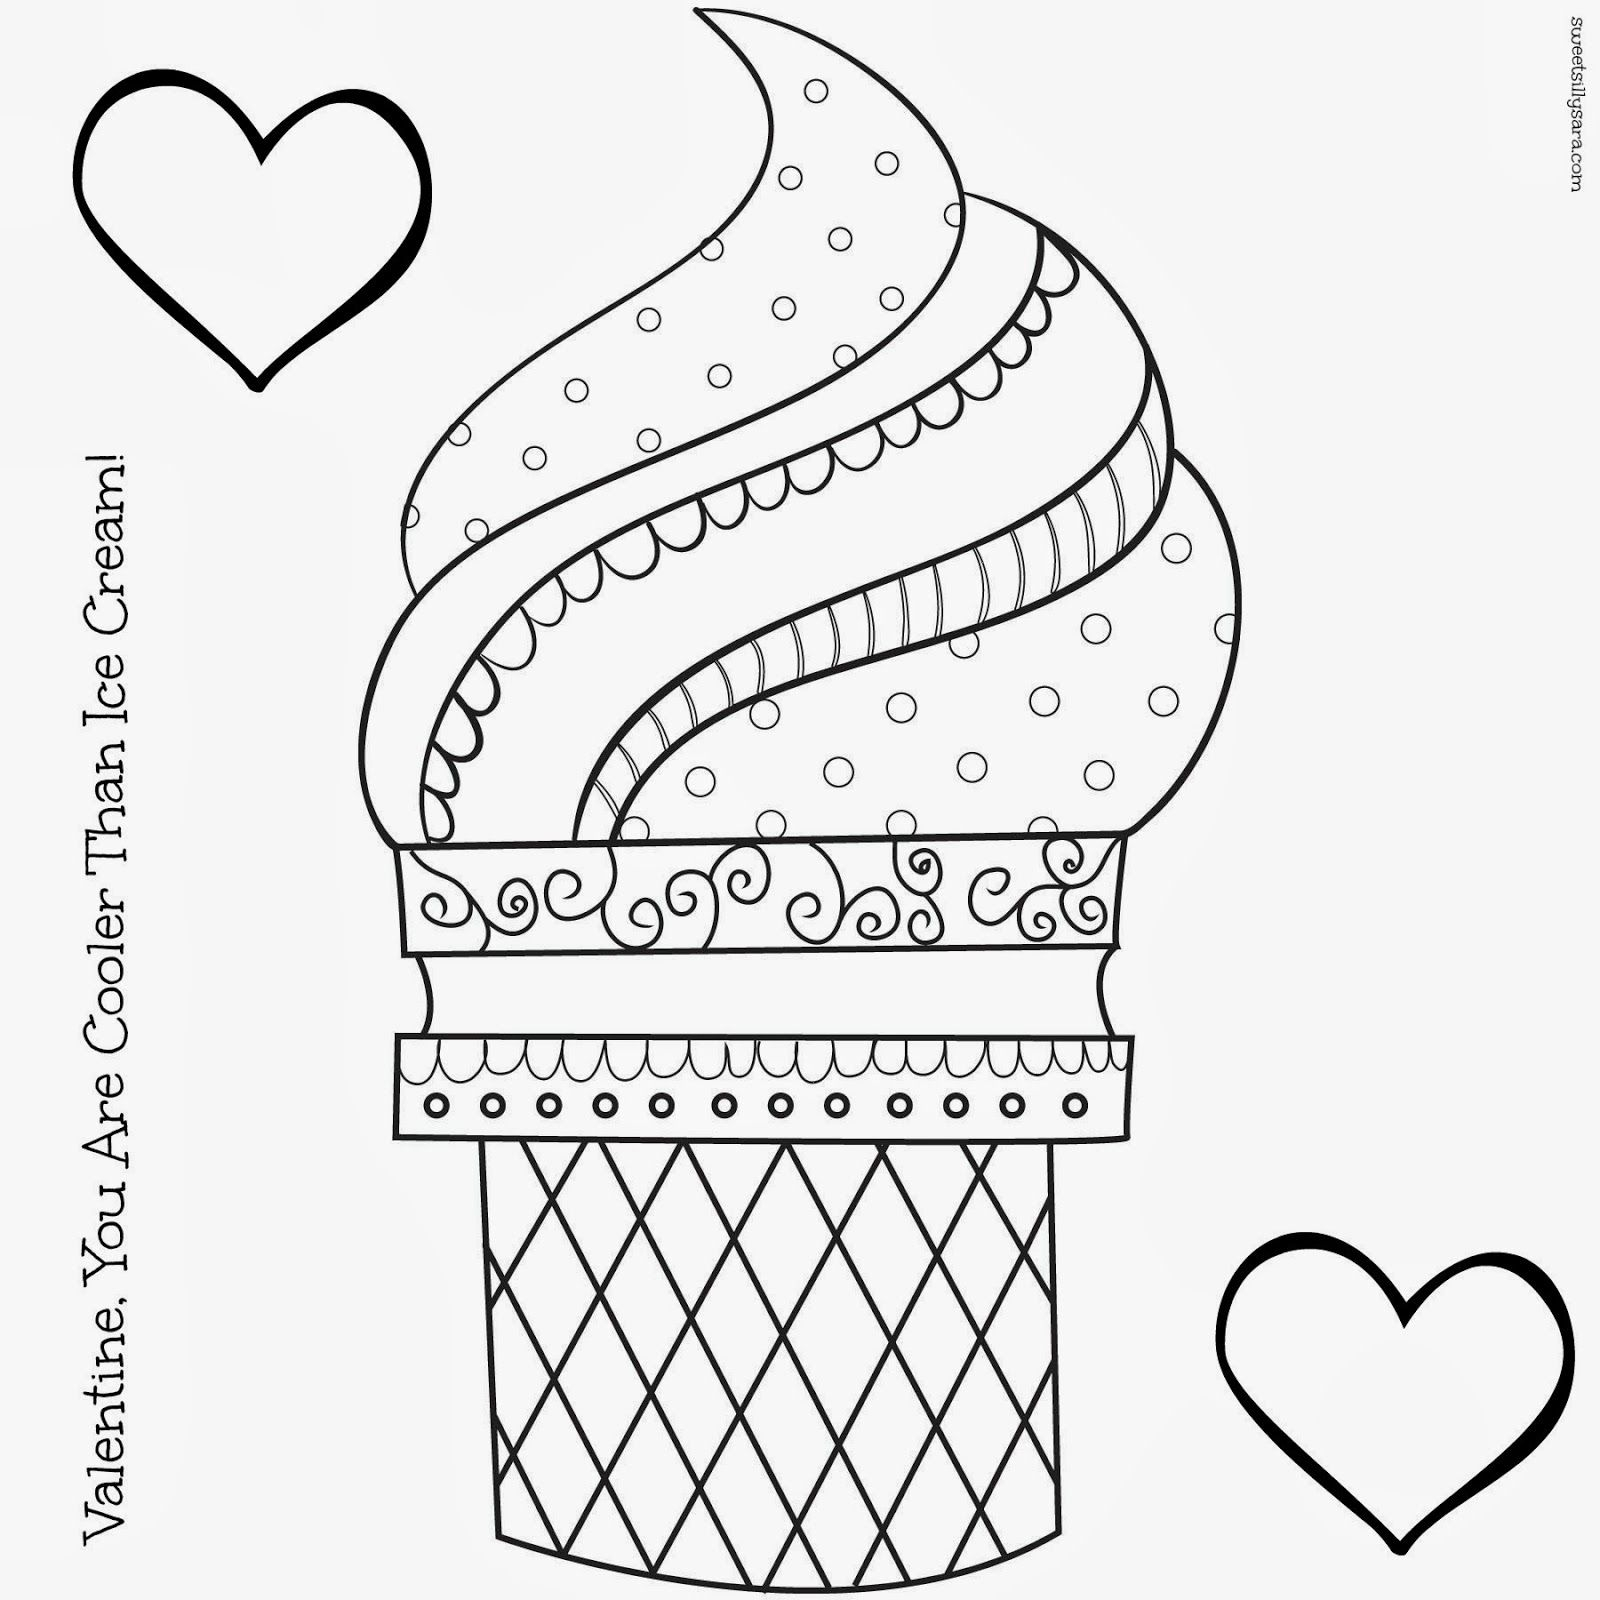 Icecream Cone Coloring Pages  to Print 8k - Free For kids